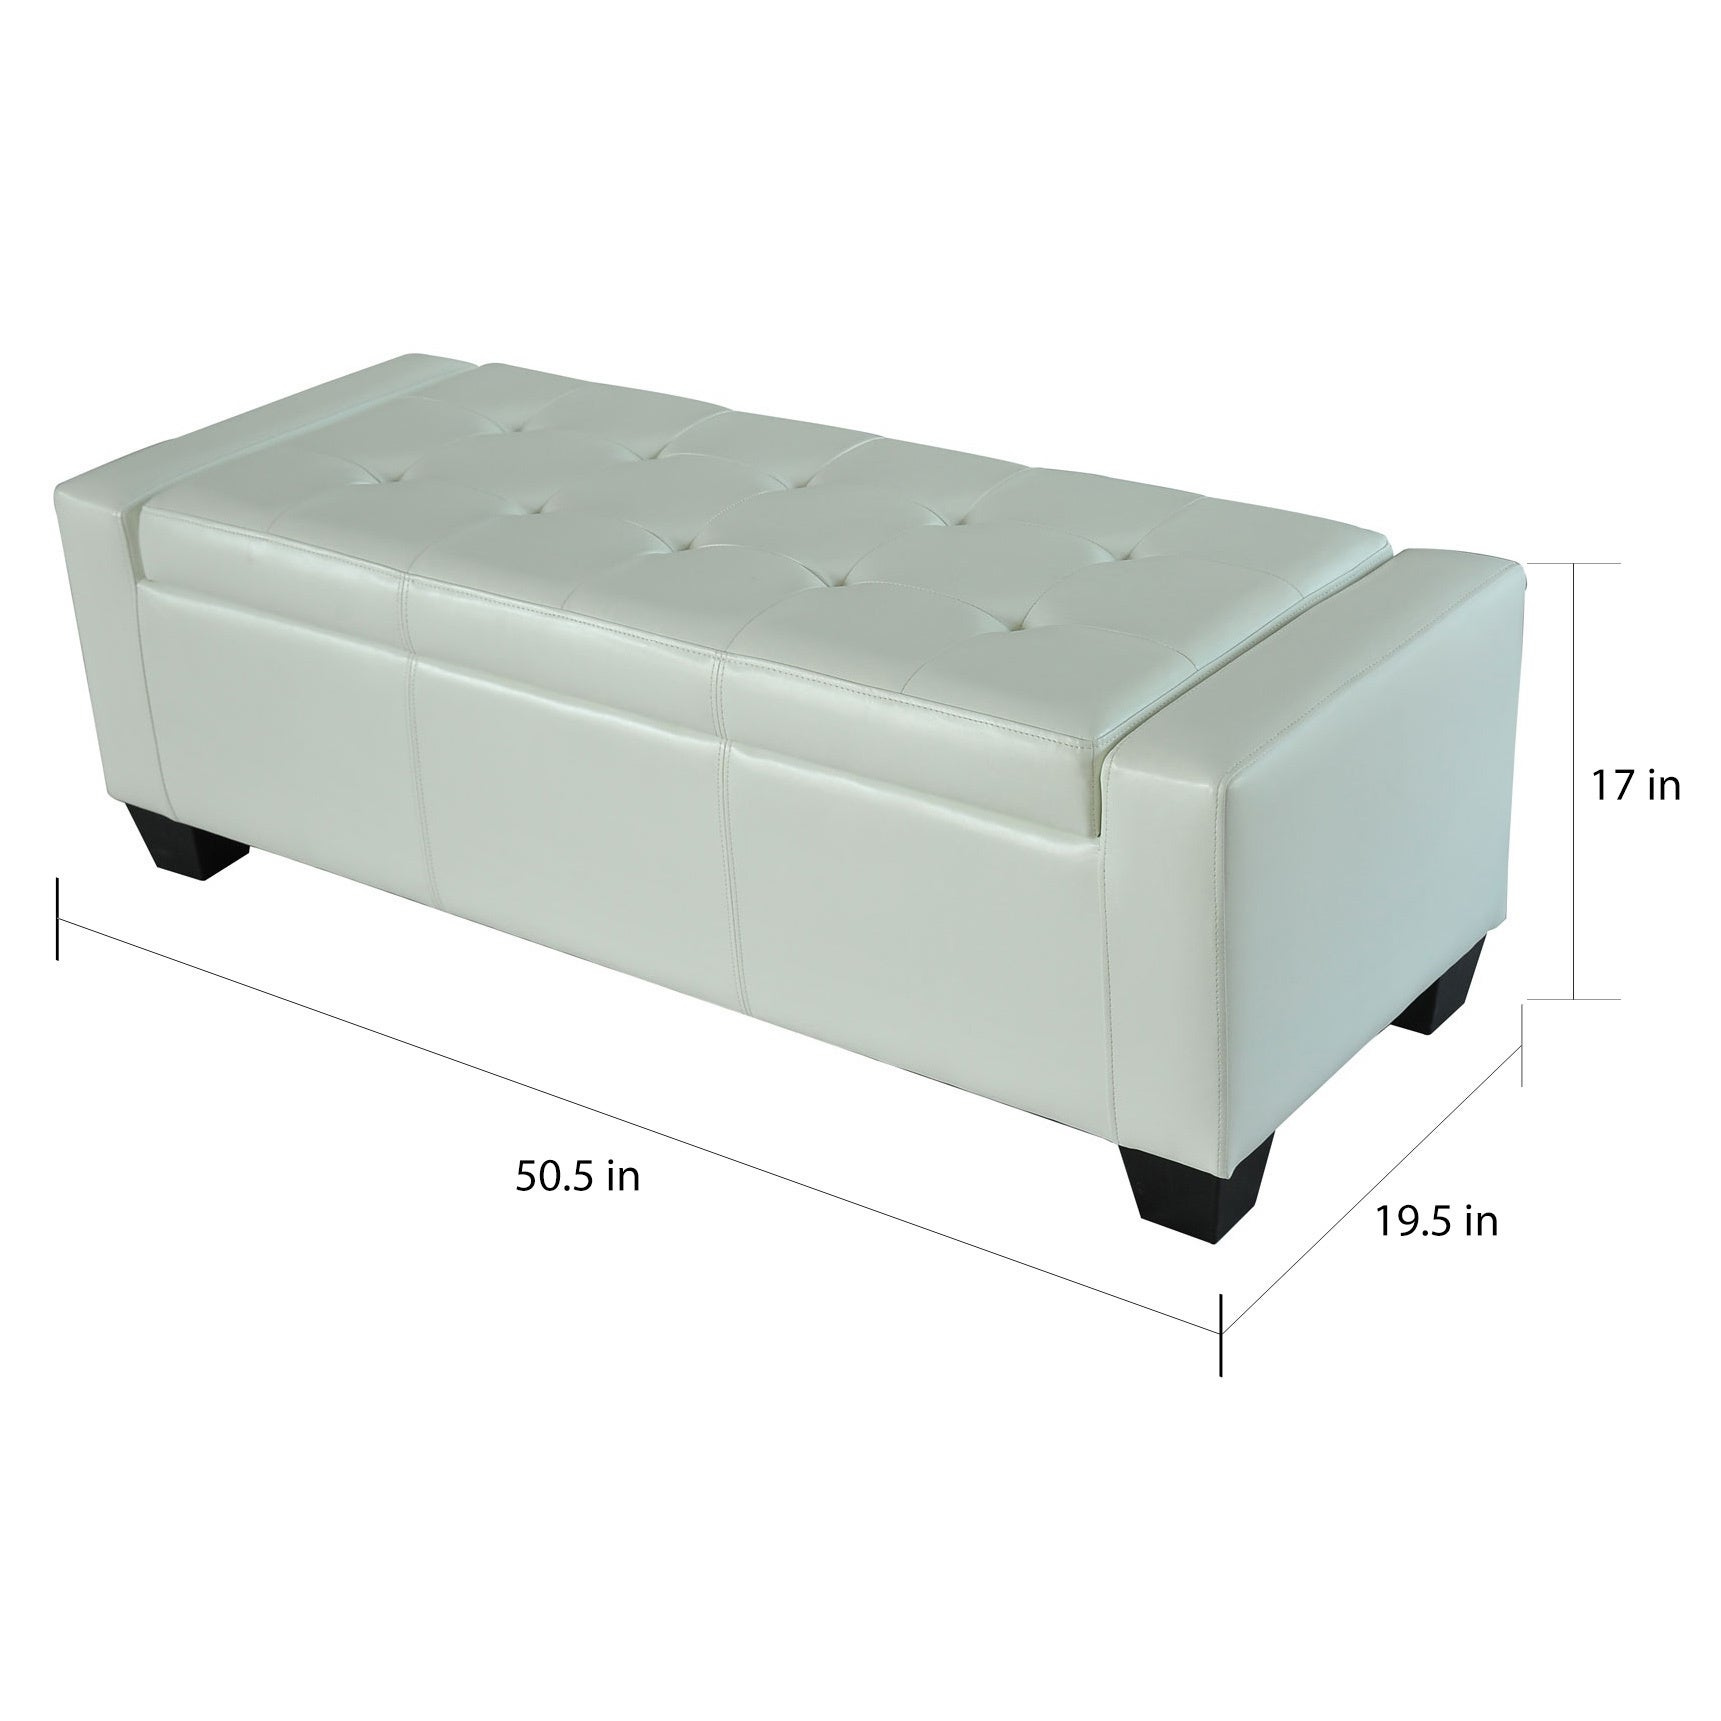 Porch Den Pickard White Faux Leather Storage Ottoman Bench On Sale Overstock 22580941